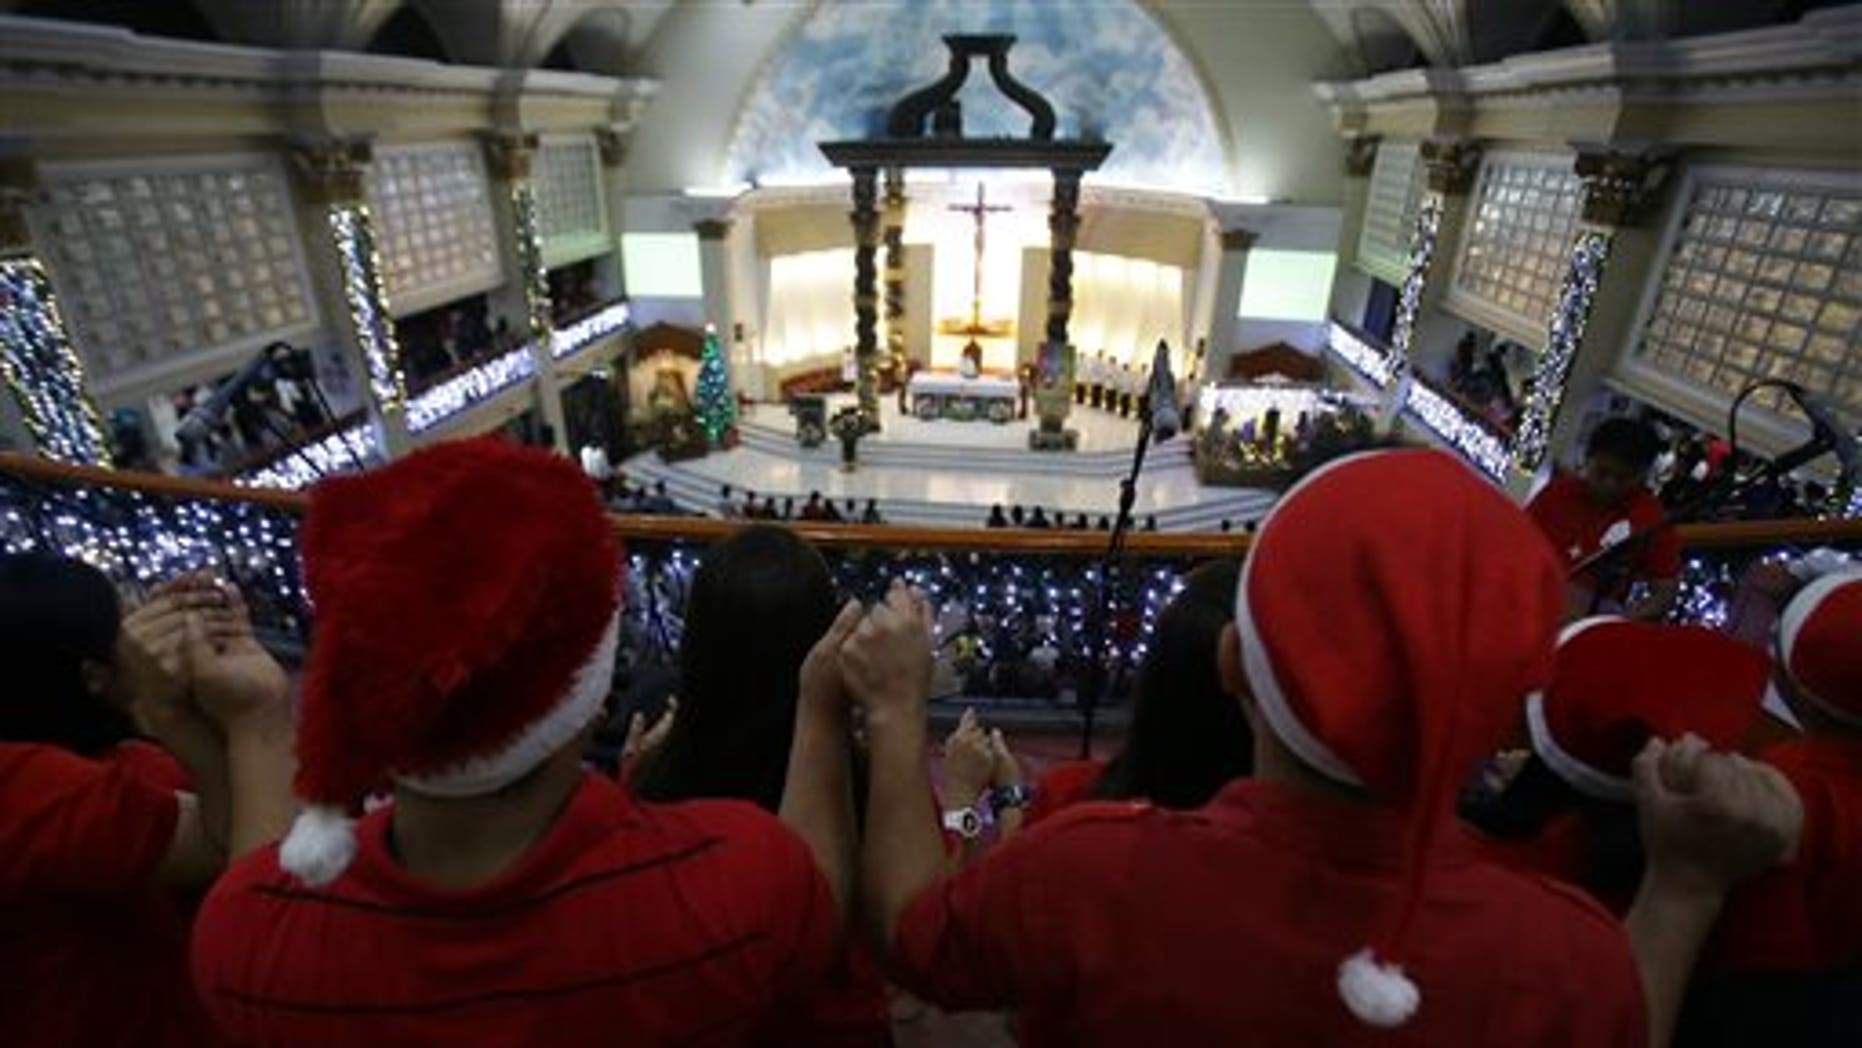 A Filipino Catholics choir hold hands as they sing during the first of nine daily dawn Masses before Christmas day at the St. Peter Parish in suburban Quezon city, north of Manila, Philippines on Wednesday, Dec. 16, 2015. This centuries-old tradition was said to have been started by farmers who wanted to fulfill their religious obligation before the day's work in the field. Christmas is the longest holiday celebration in this predominantly Roman Catholic nation.(AP Photo/Aaron Favila)